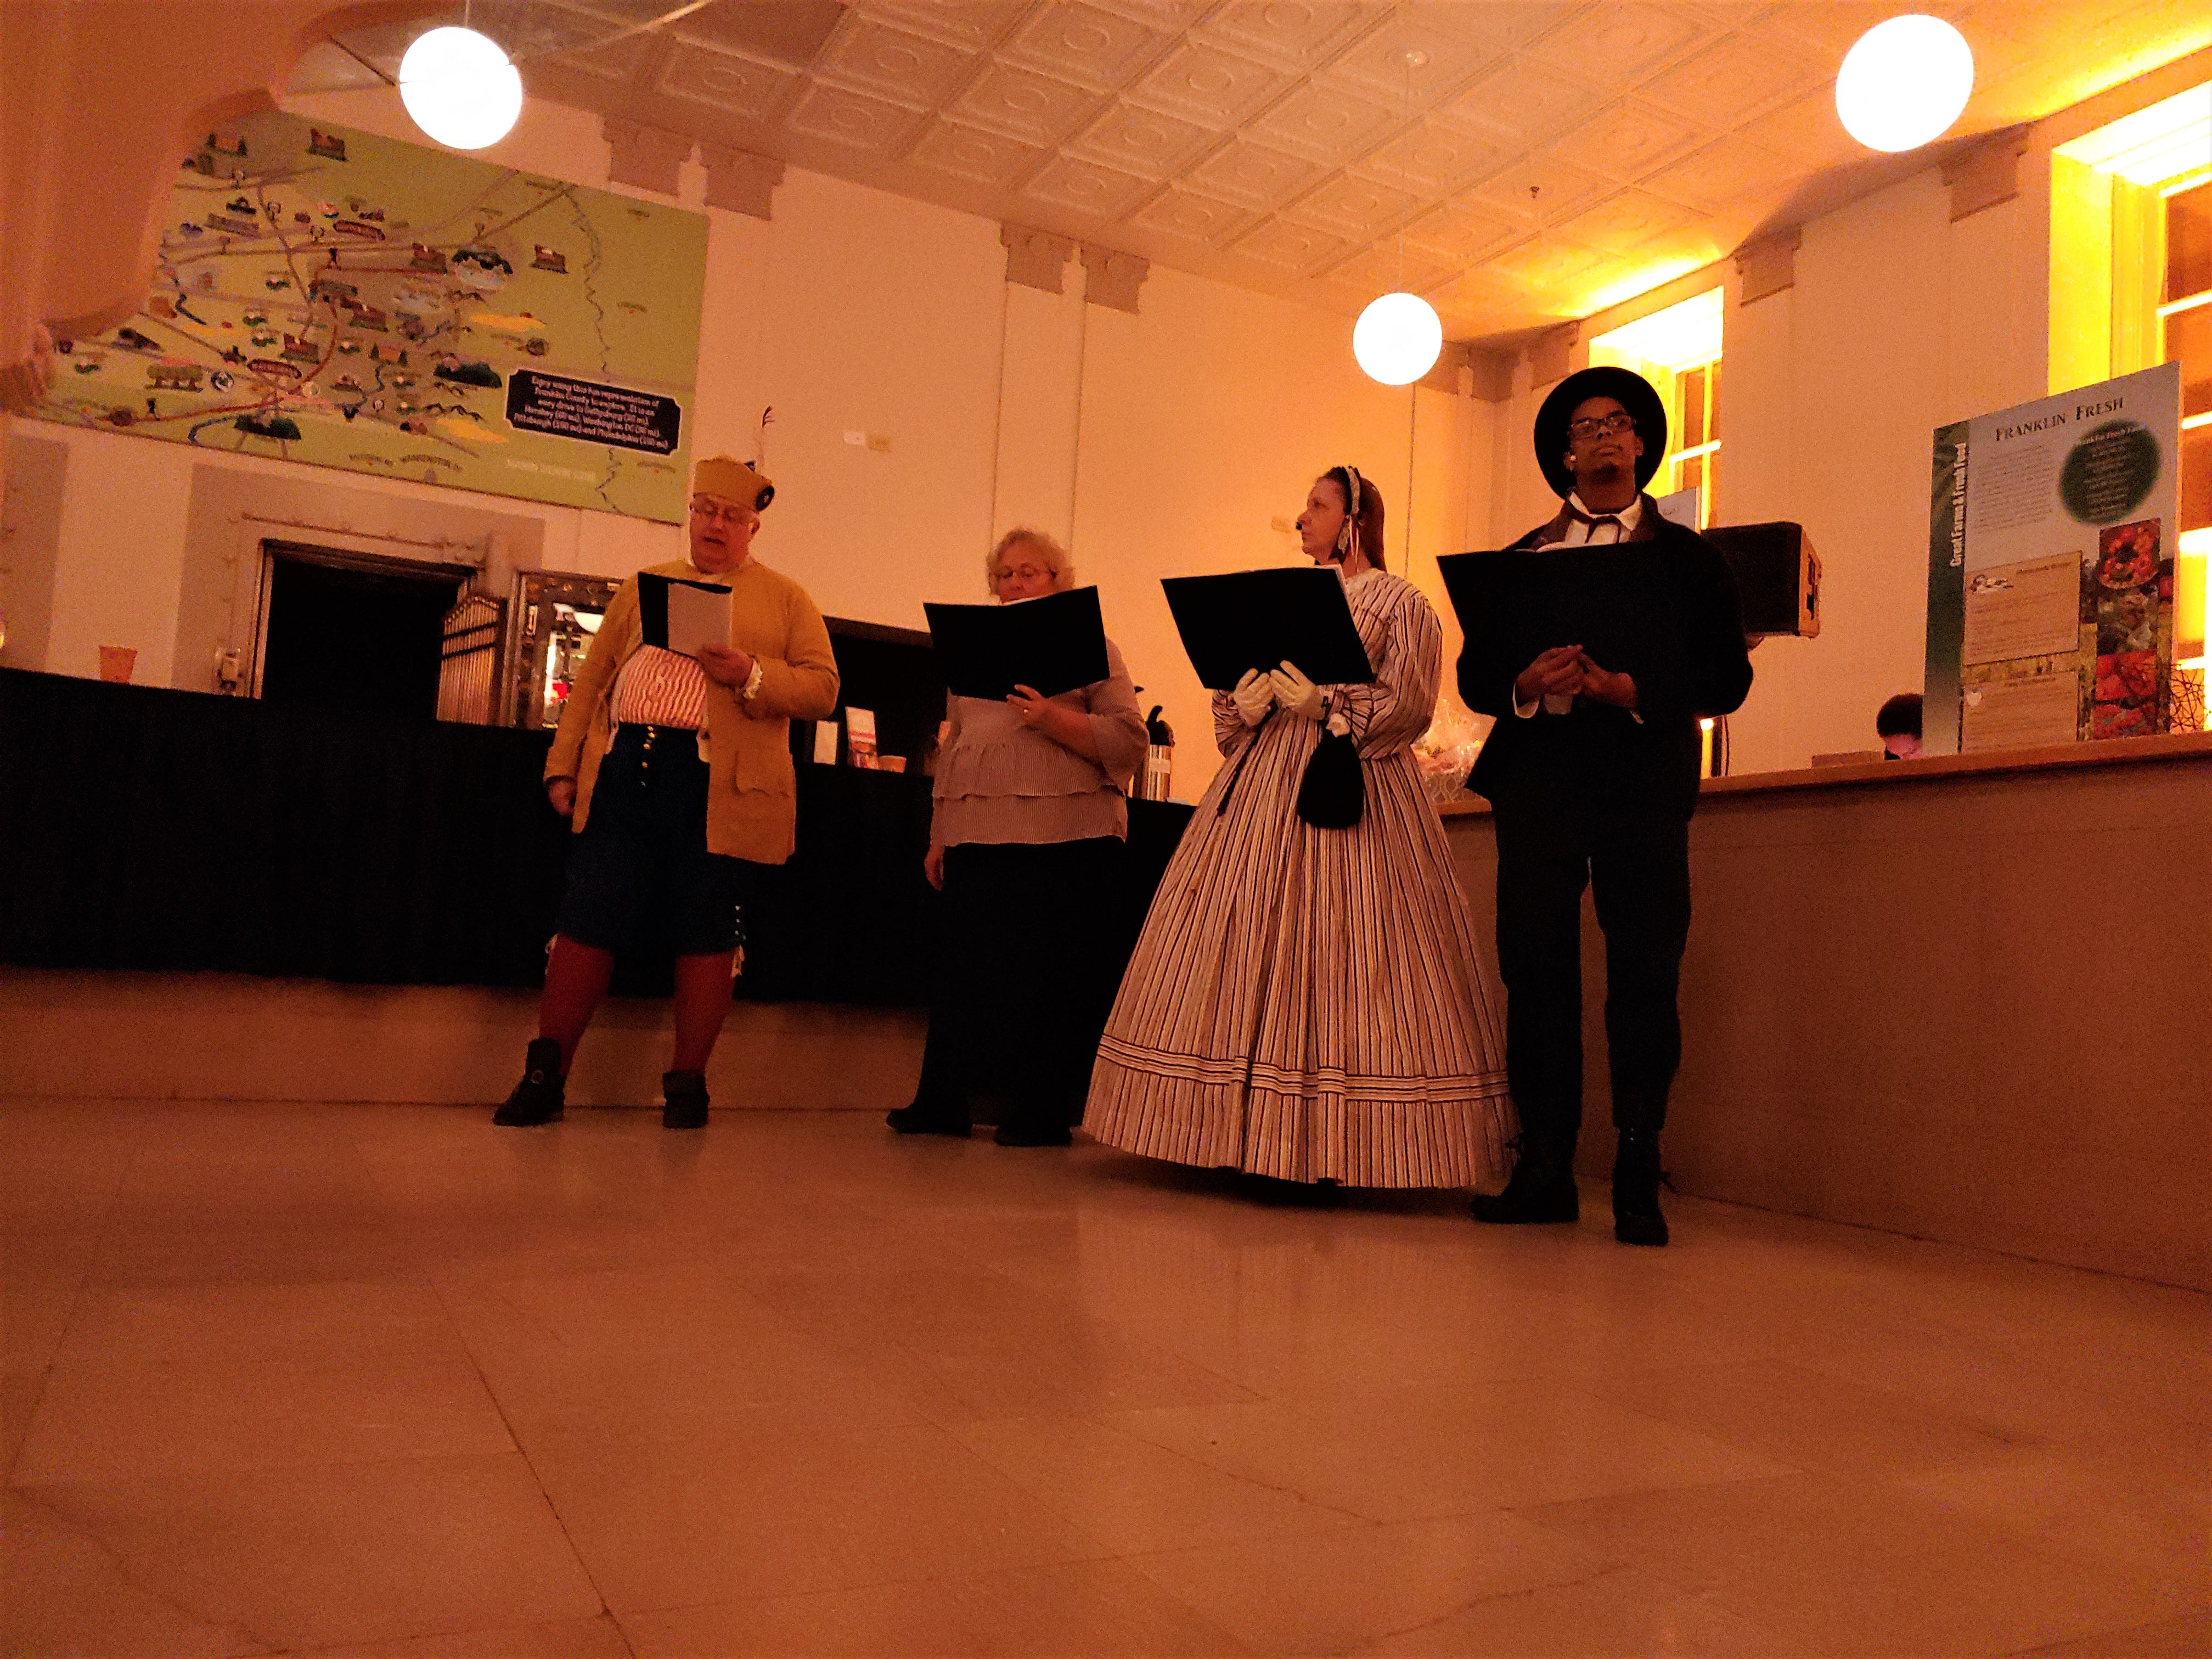 """Franklin County Visitors Bureau presented """"300 Year's of America's History,"""" including the 1864 Ransoming, Burning and Rebirth of Chambersburg, during the grand opening of the 11/30 Welcome Center on Saturday, Nov. 24, 2018. Featured were Andy Newman, Bryton Zook, Carlos Lee, Charles Rittenhouse, David Moore, Dawn Snider, Emily Martin, John Shindledecker, Nancy Godfrey and Susan Wall."""